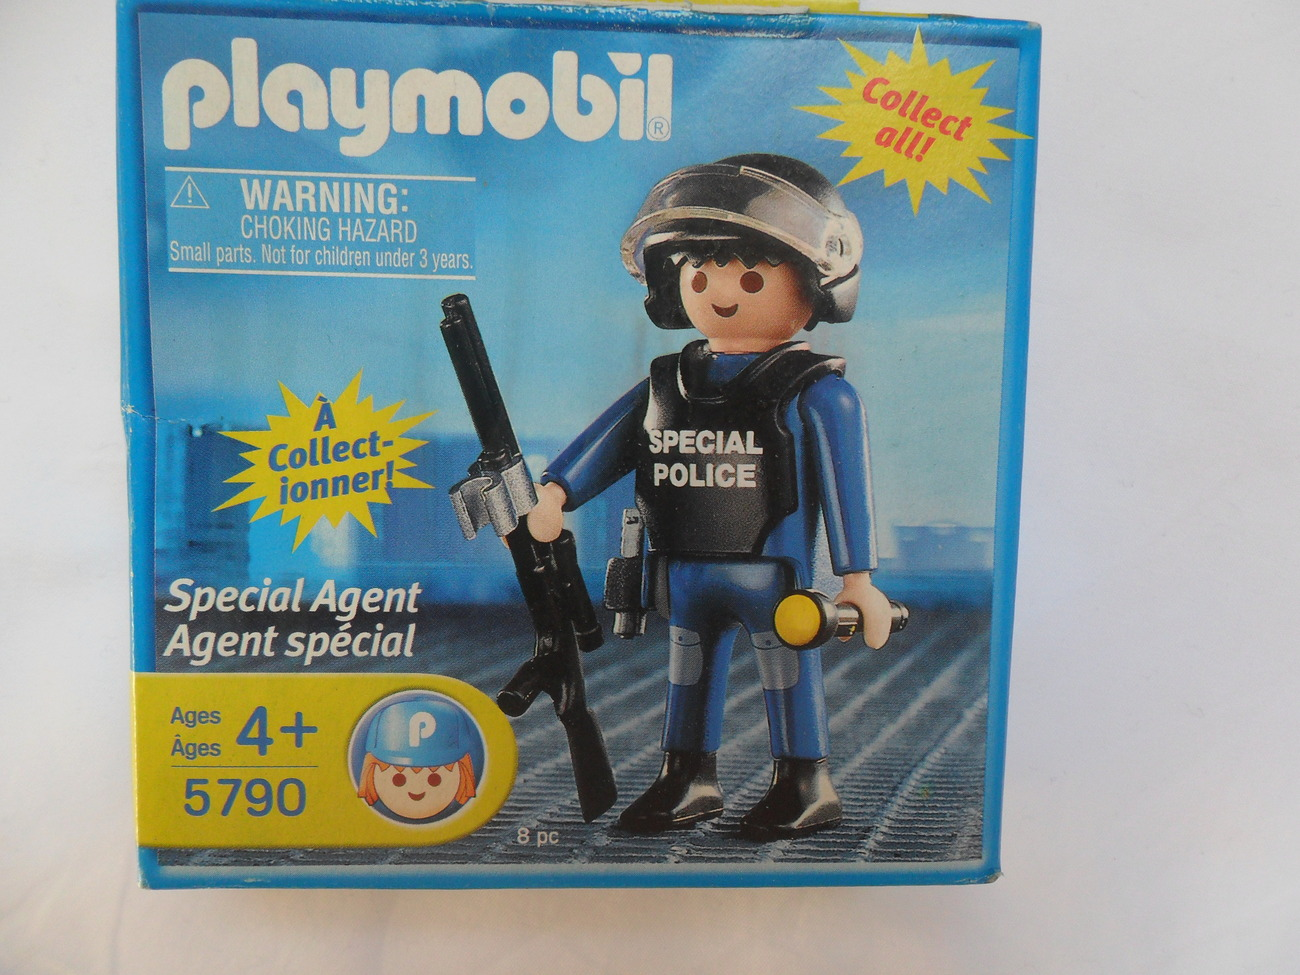 Primary image for PLAYMOBIL SPECIAL AGENT FIGURE #5790 UNOPENED BOX